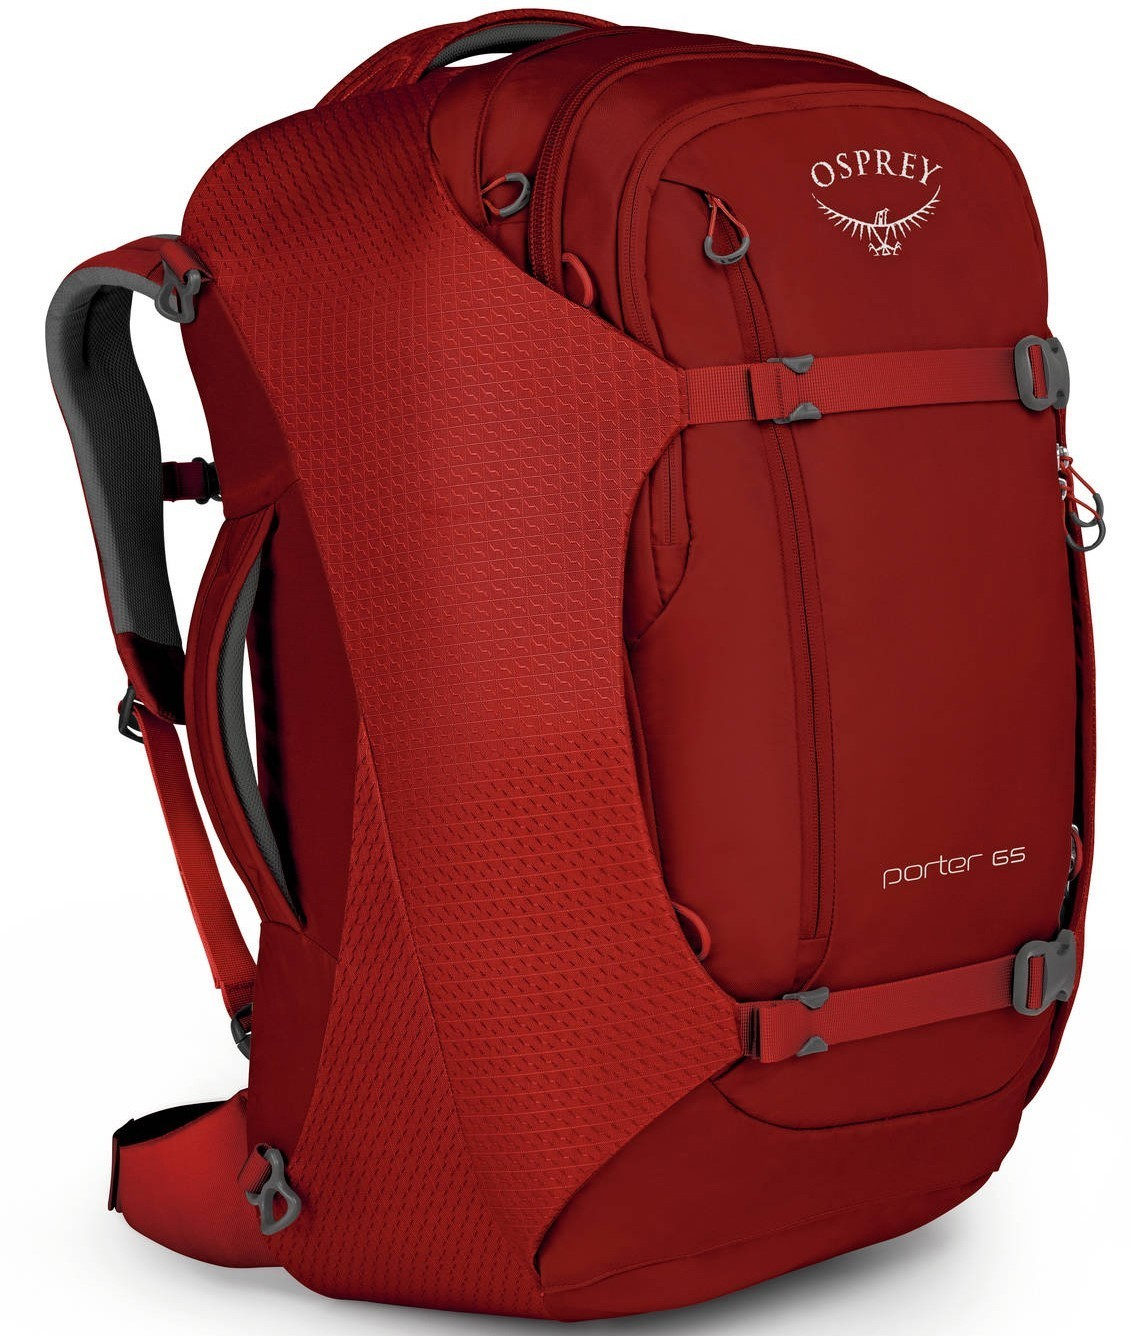 Сумки-рюкзаки Сумка-рюкзак Osprey Porter 65 Diablo Red Porter_65_F17_Side_Diablo_Red_web.jpg